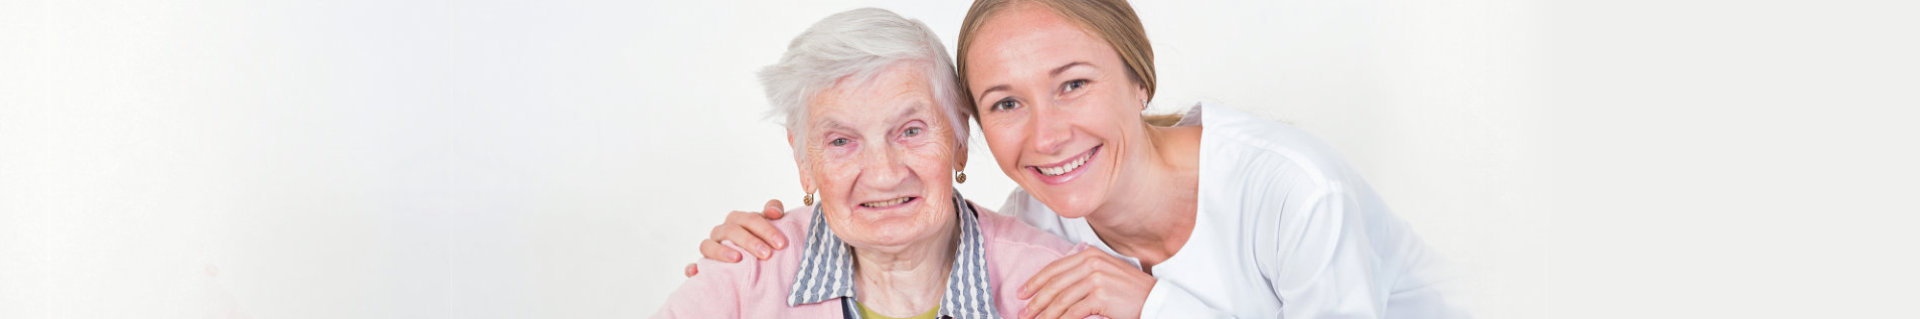 an elderly woman with her caregiver smiling together